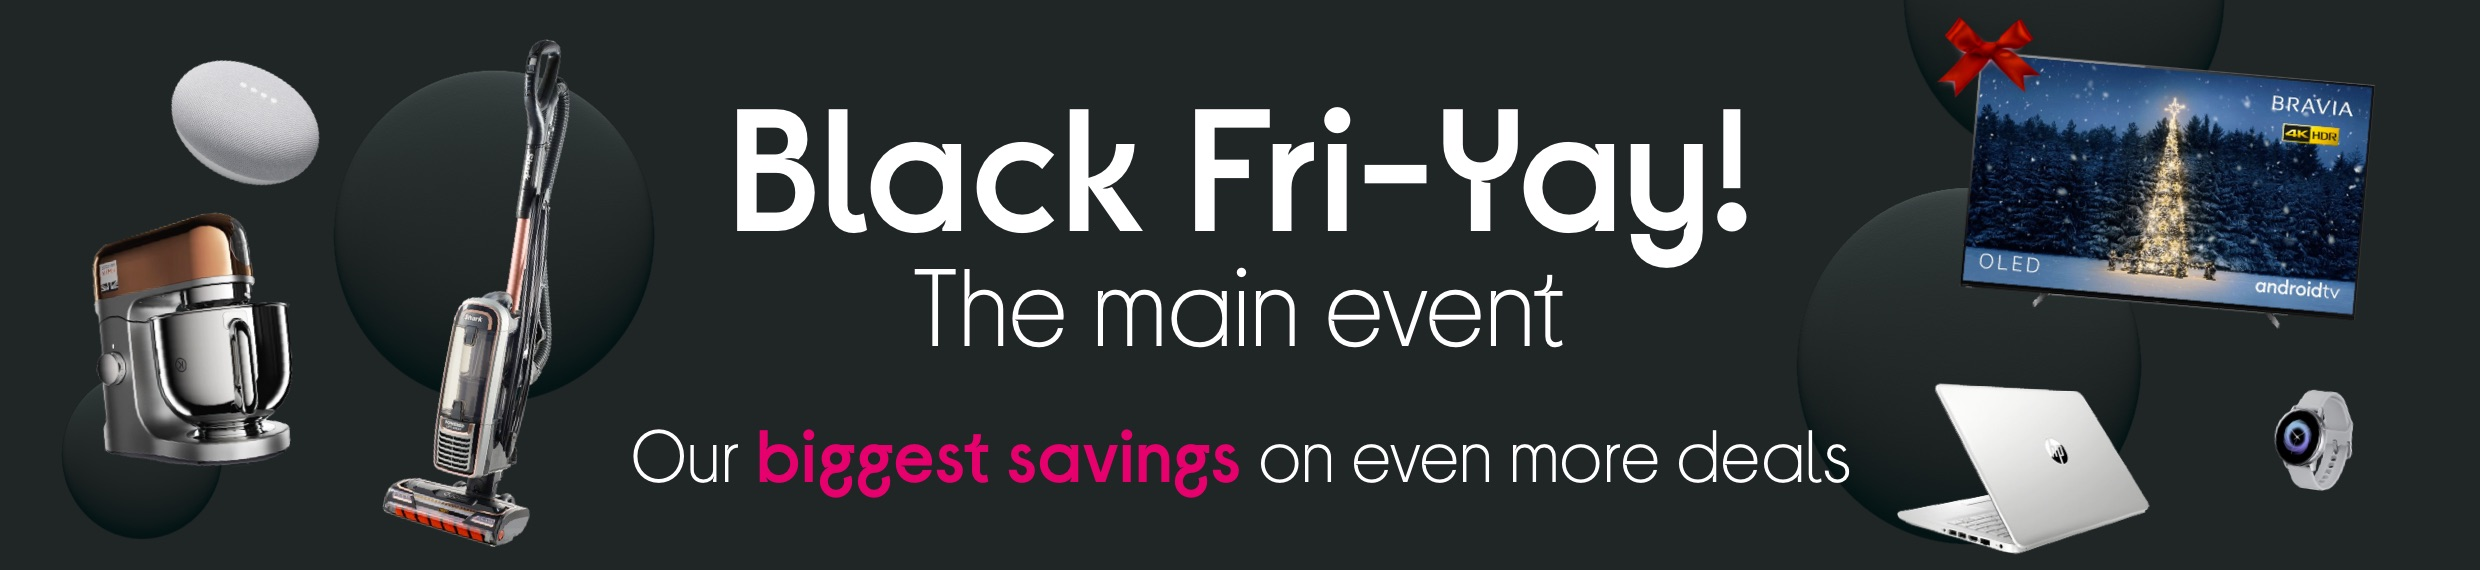 Black Friday the main event